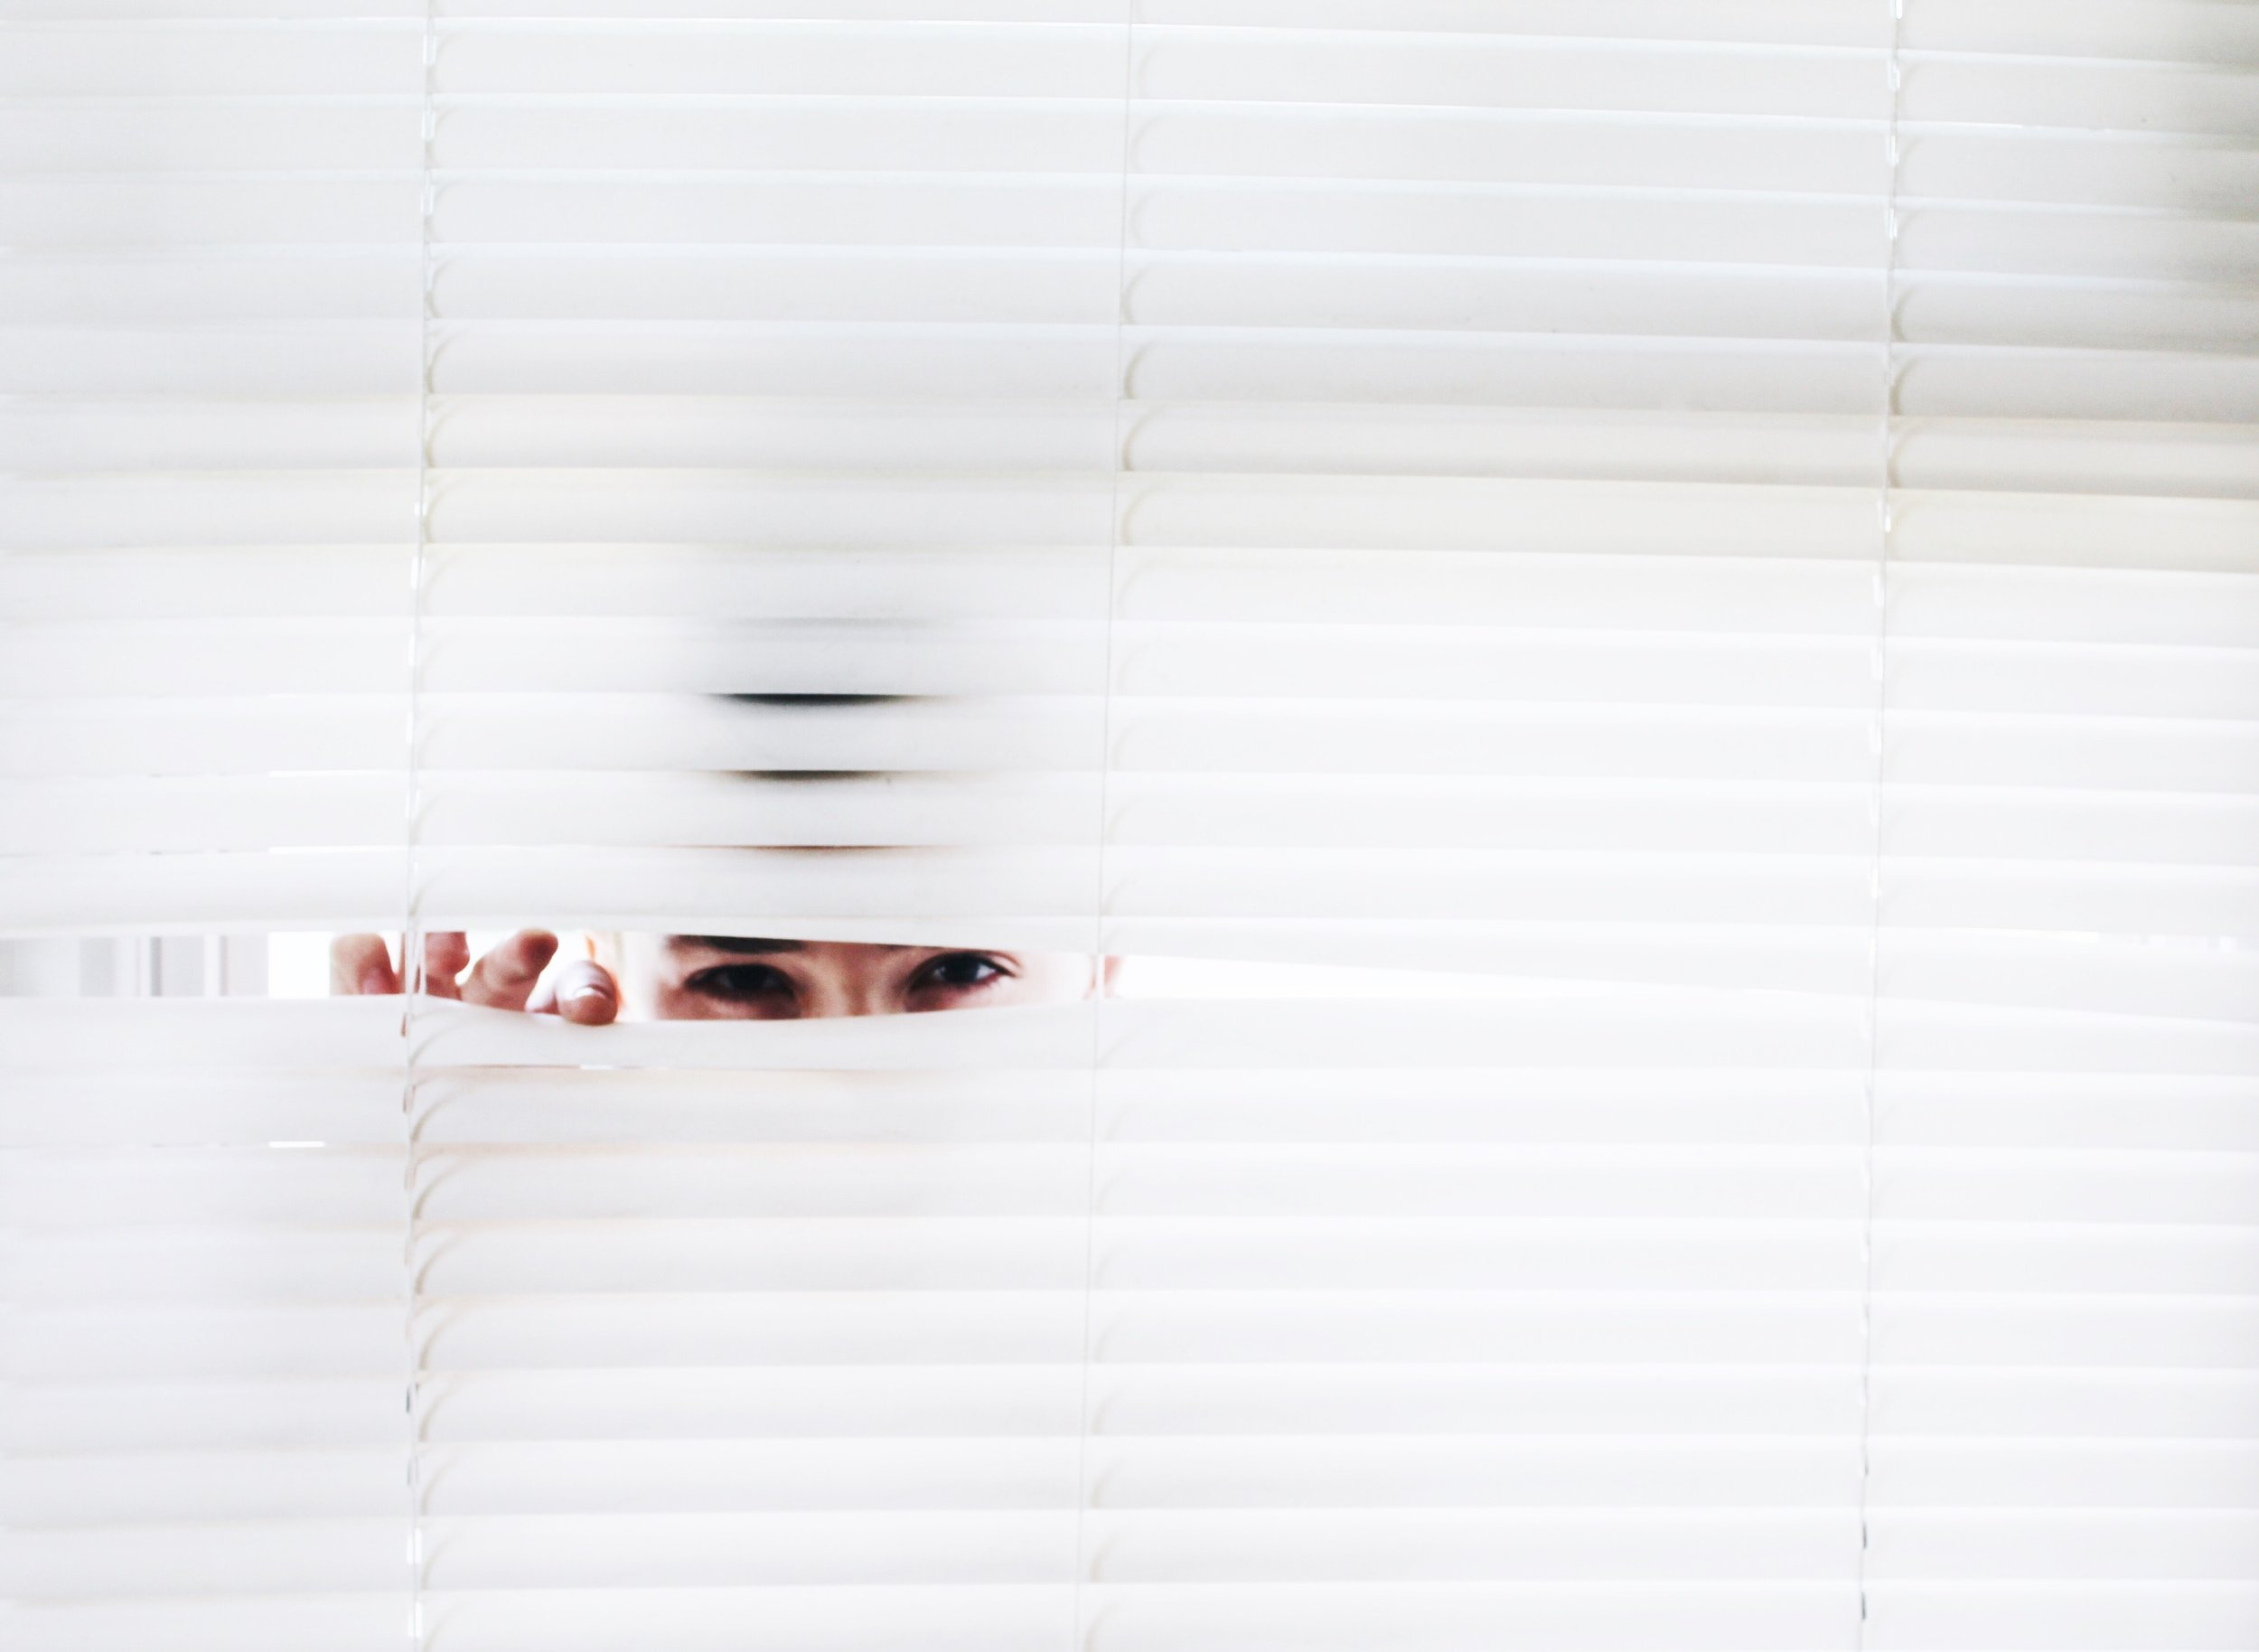 blinds-curiosity-eyes-906018.jpg